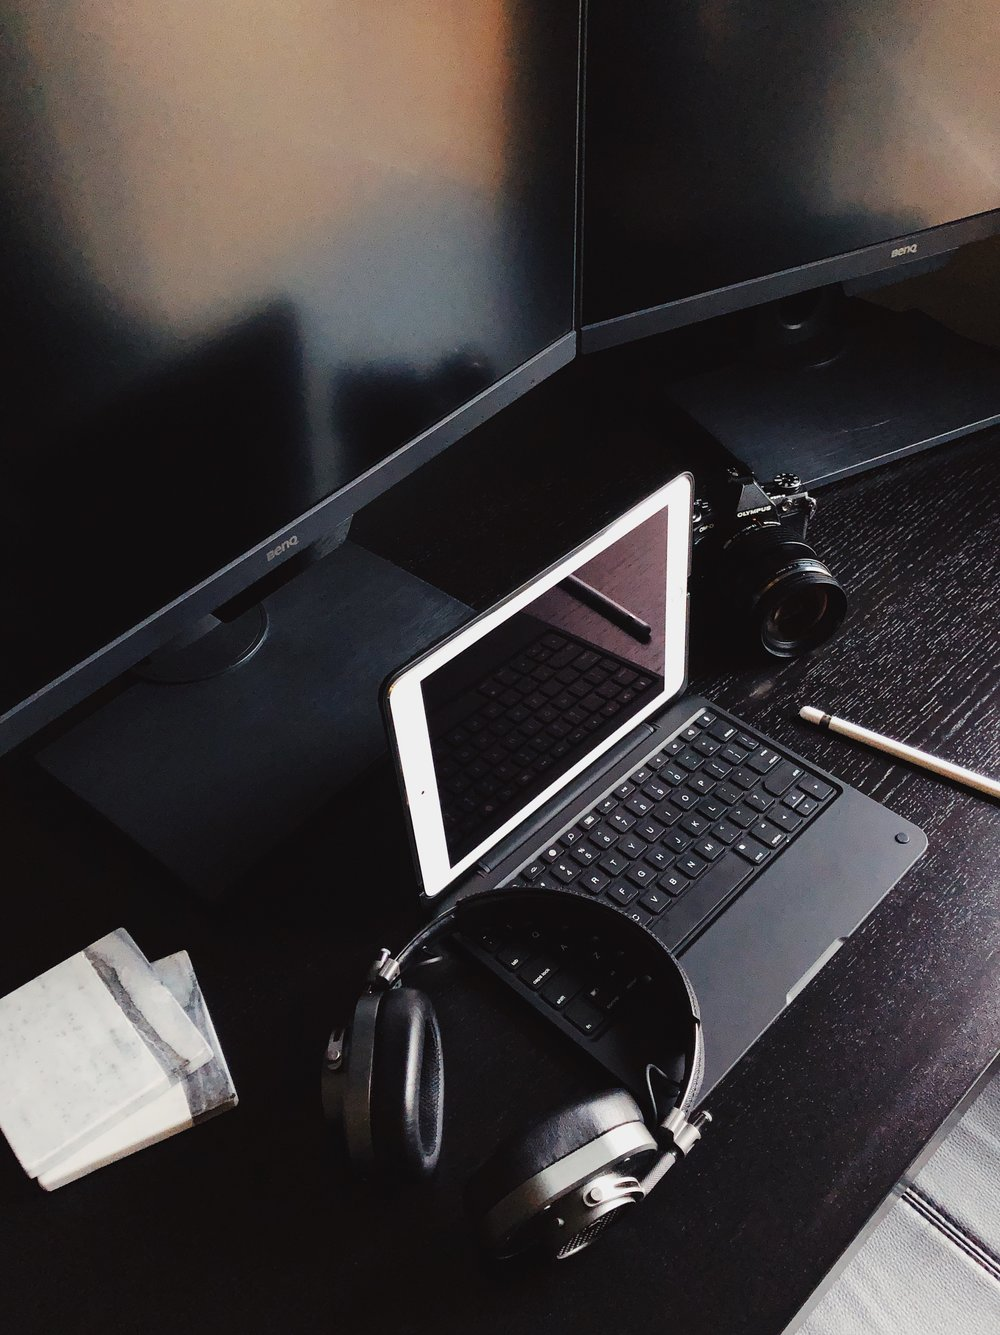 Griswold-Blog-Apple-Ipad-Pro-Olympus-Incase-Keyboard-Mobile-Editing